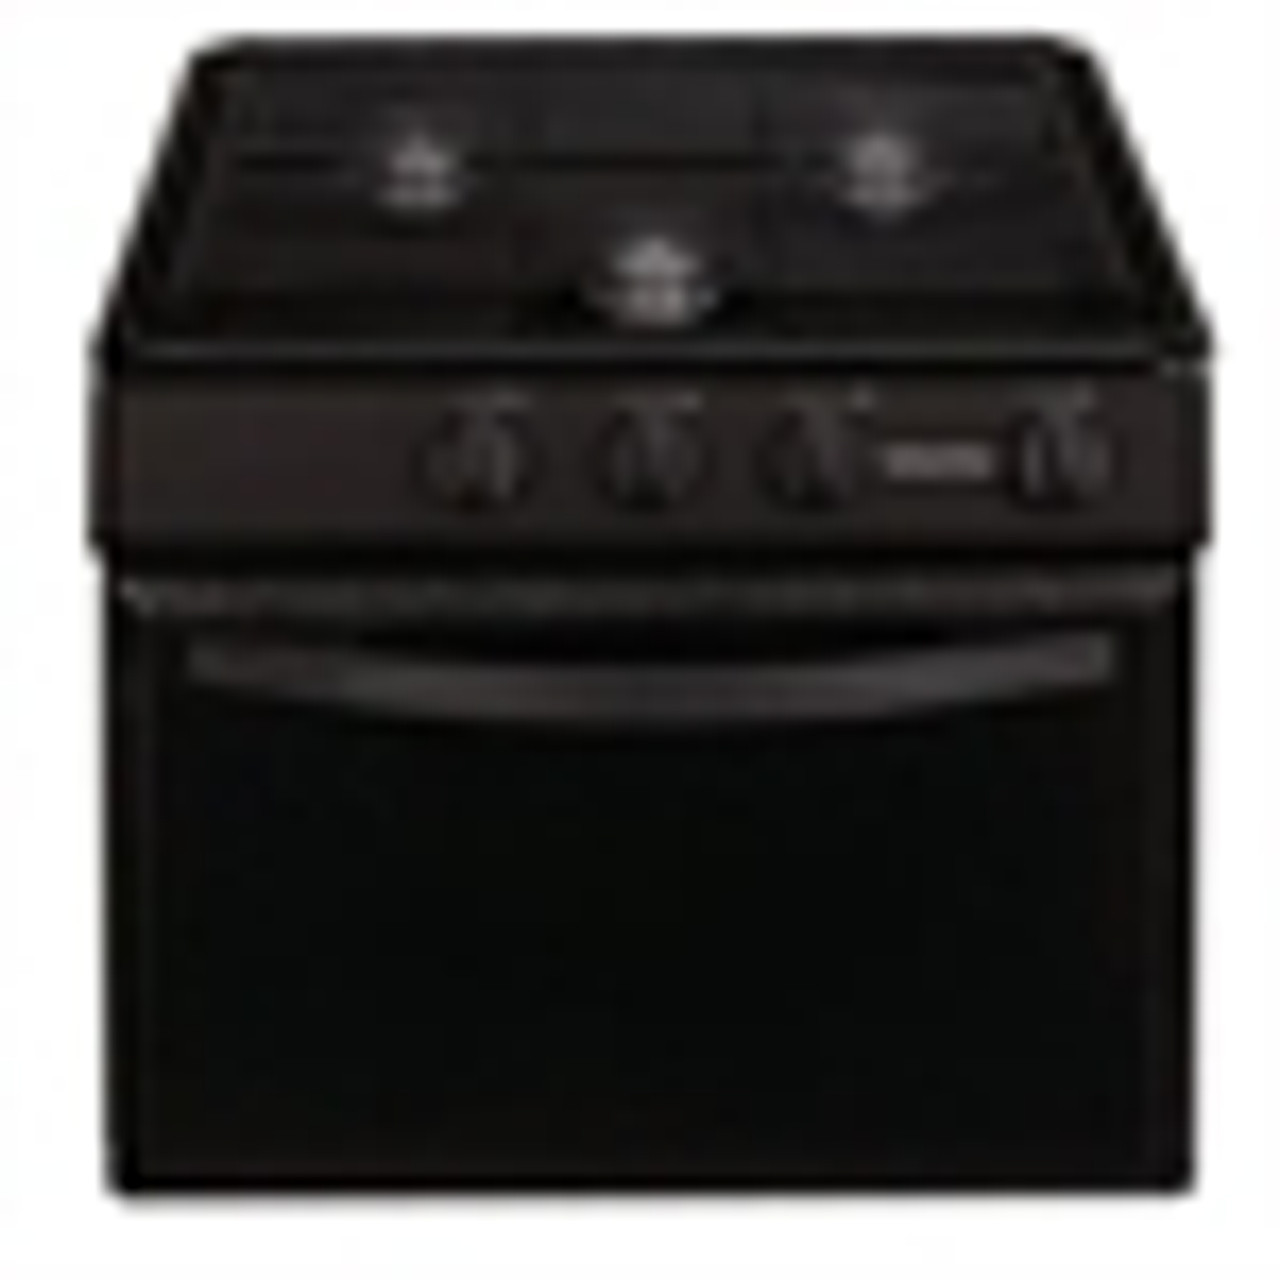 Cooktops, Ranges, & Ovens